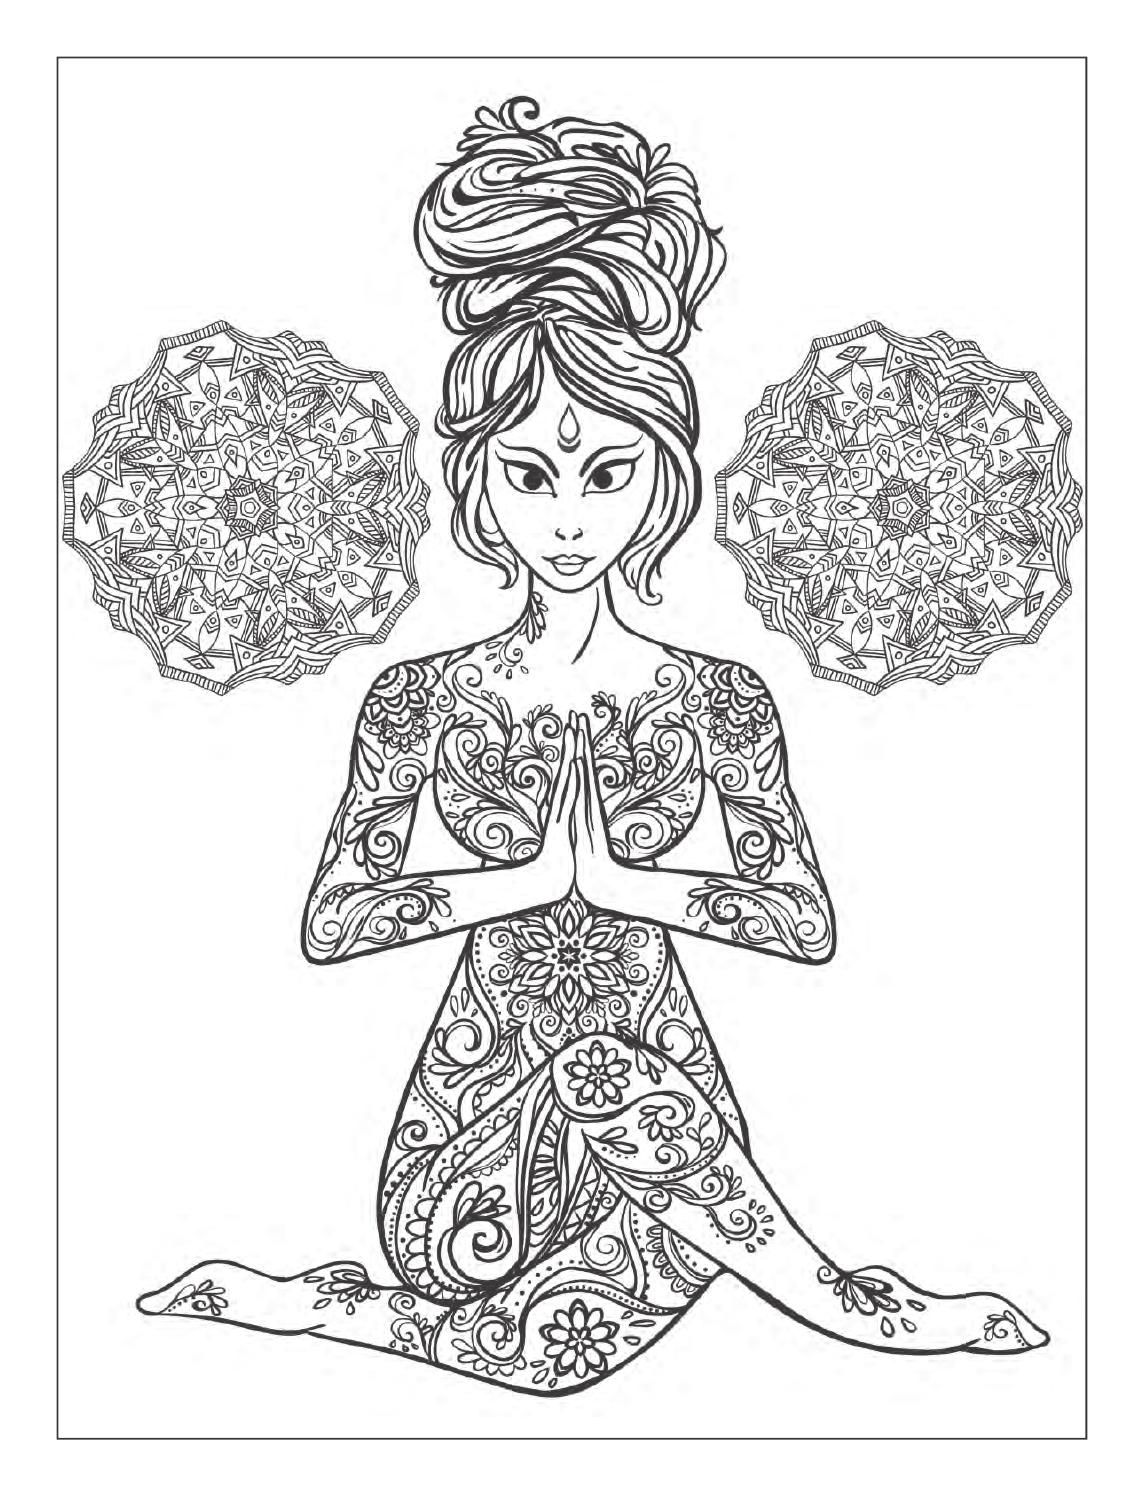 Coloring pages yoga - Yoga And Meditation Coloring Book For Adults With Yoga Poses And Mandalas